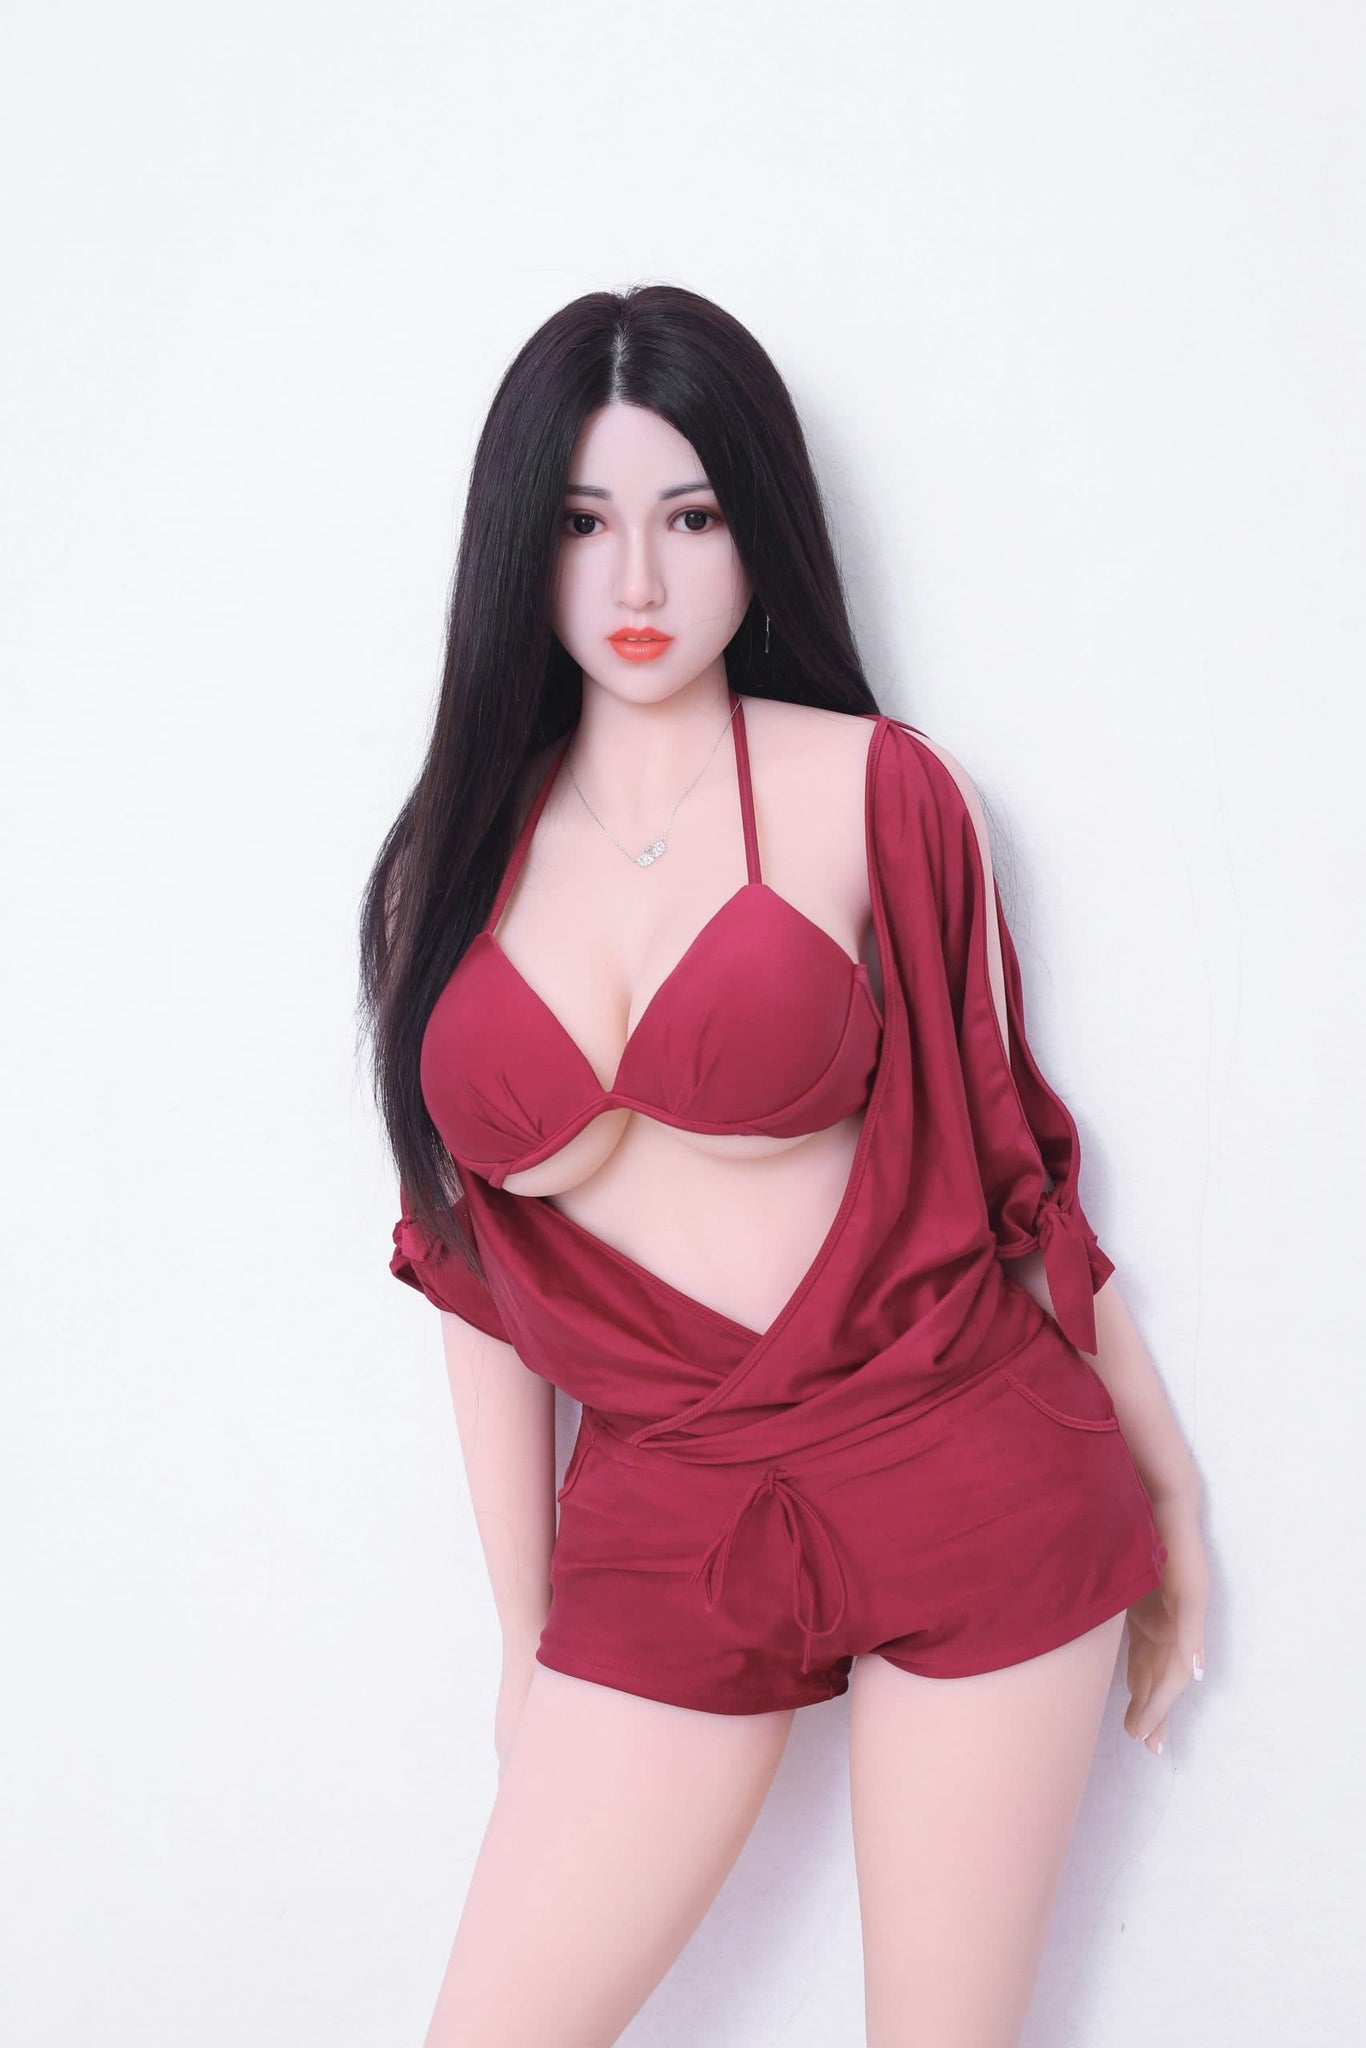 kiki 165cm af black hair big boobs athletic tpe sex doll(7)